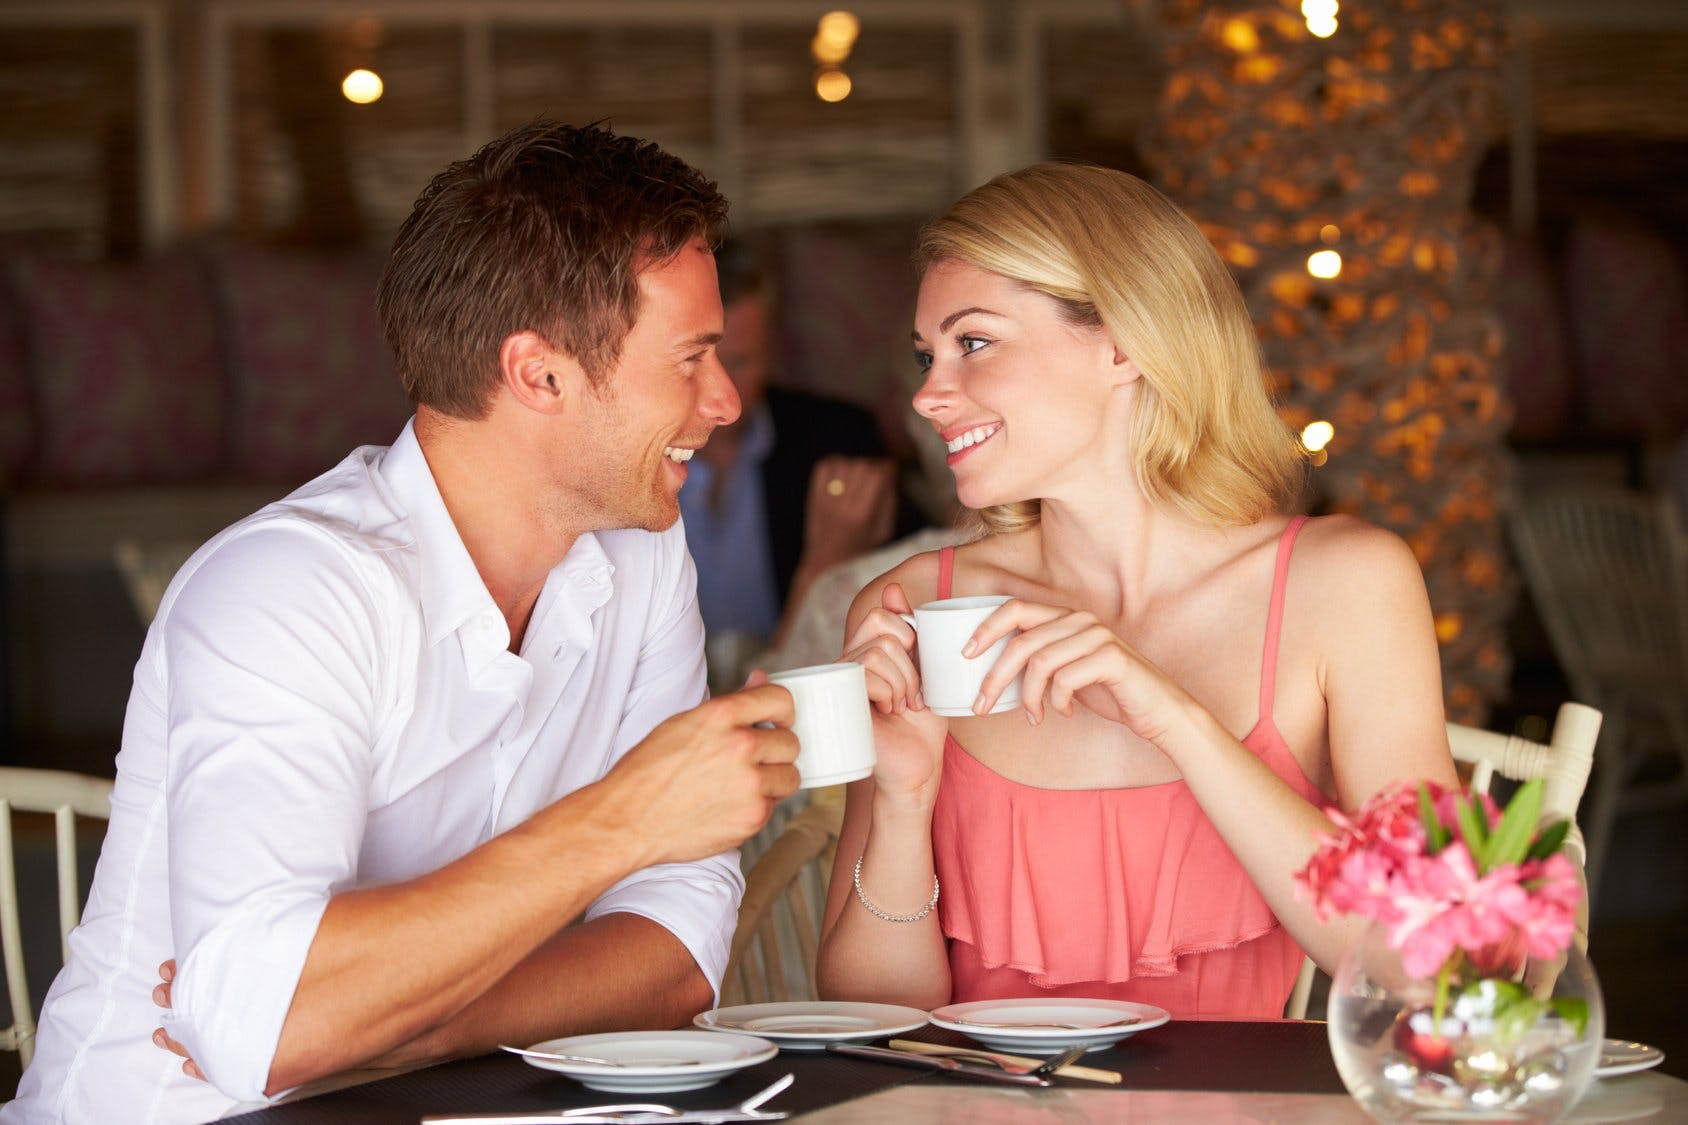 5 Things You Should Avoid Talking About On A First Date